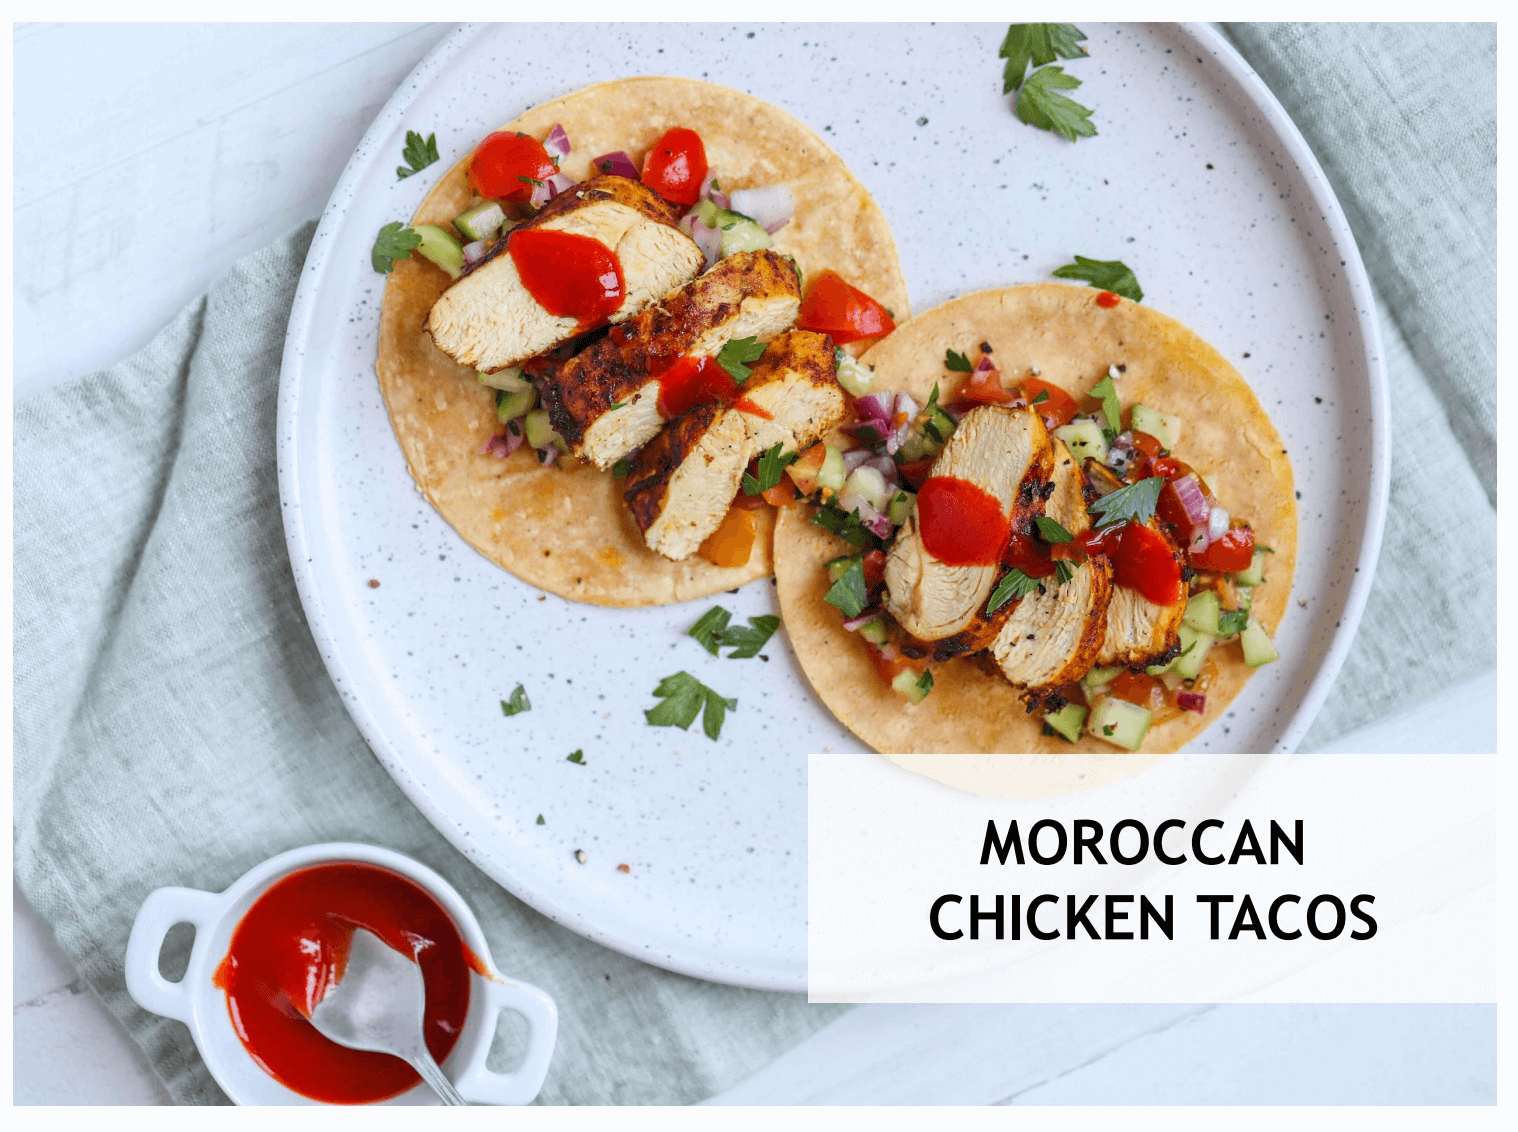 Moroccan Chicken Tacos